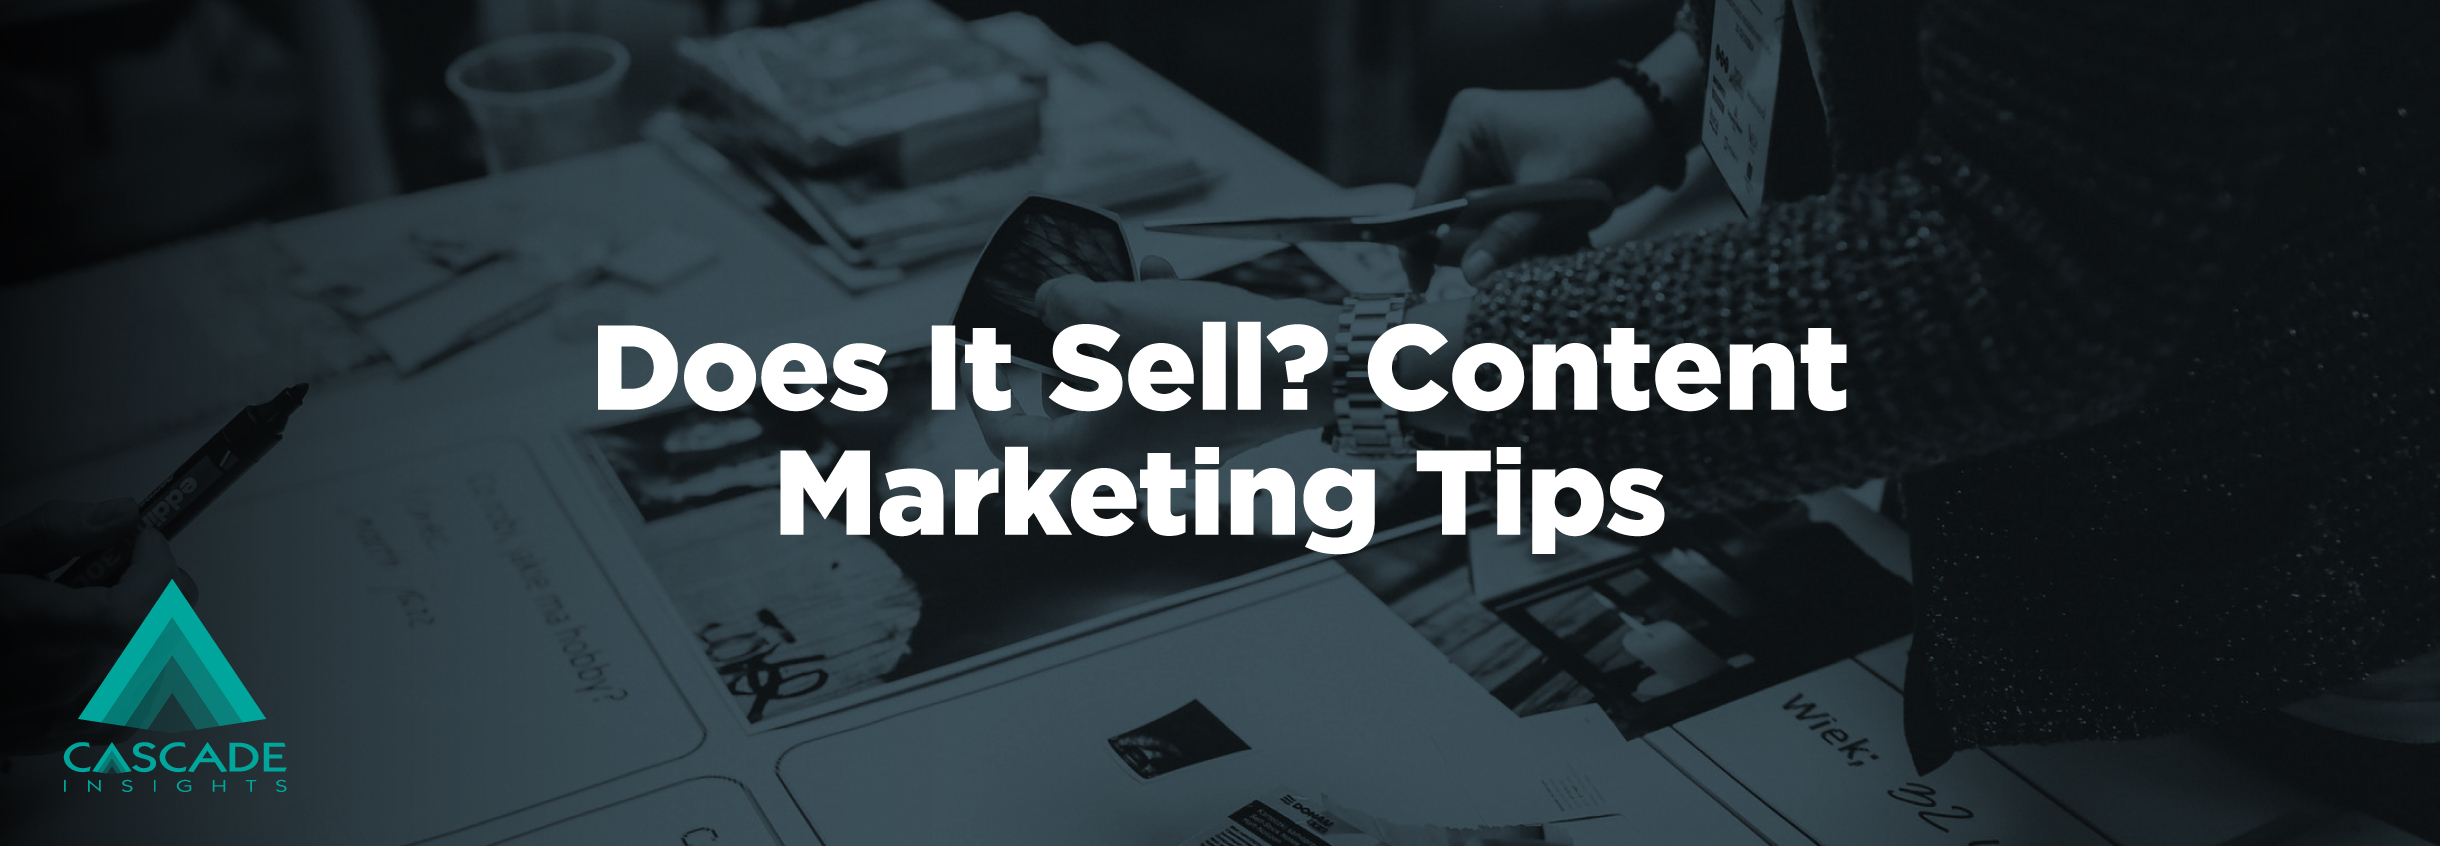 Does it Sell? Content Marketing Tips